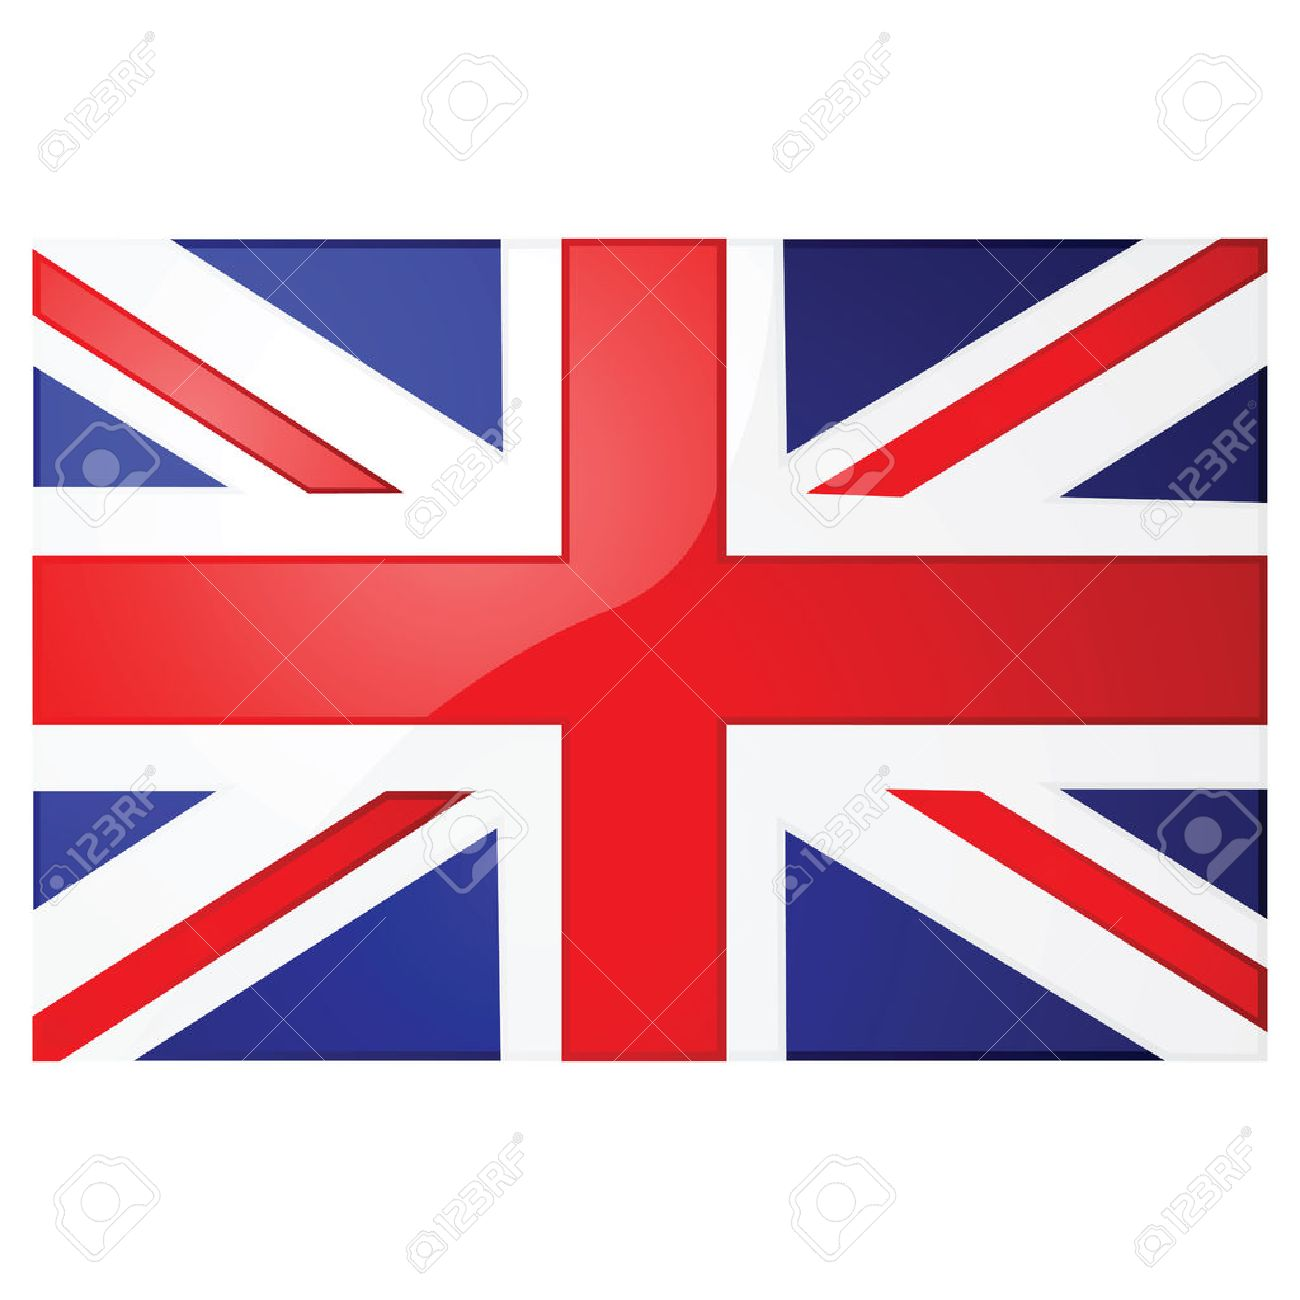 glossy illustration of the union jack the british flag royalty free rh 123rf com uk flag clip art british flag border clip art free